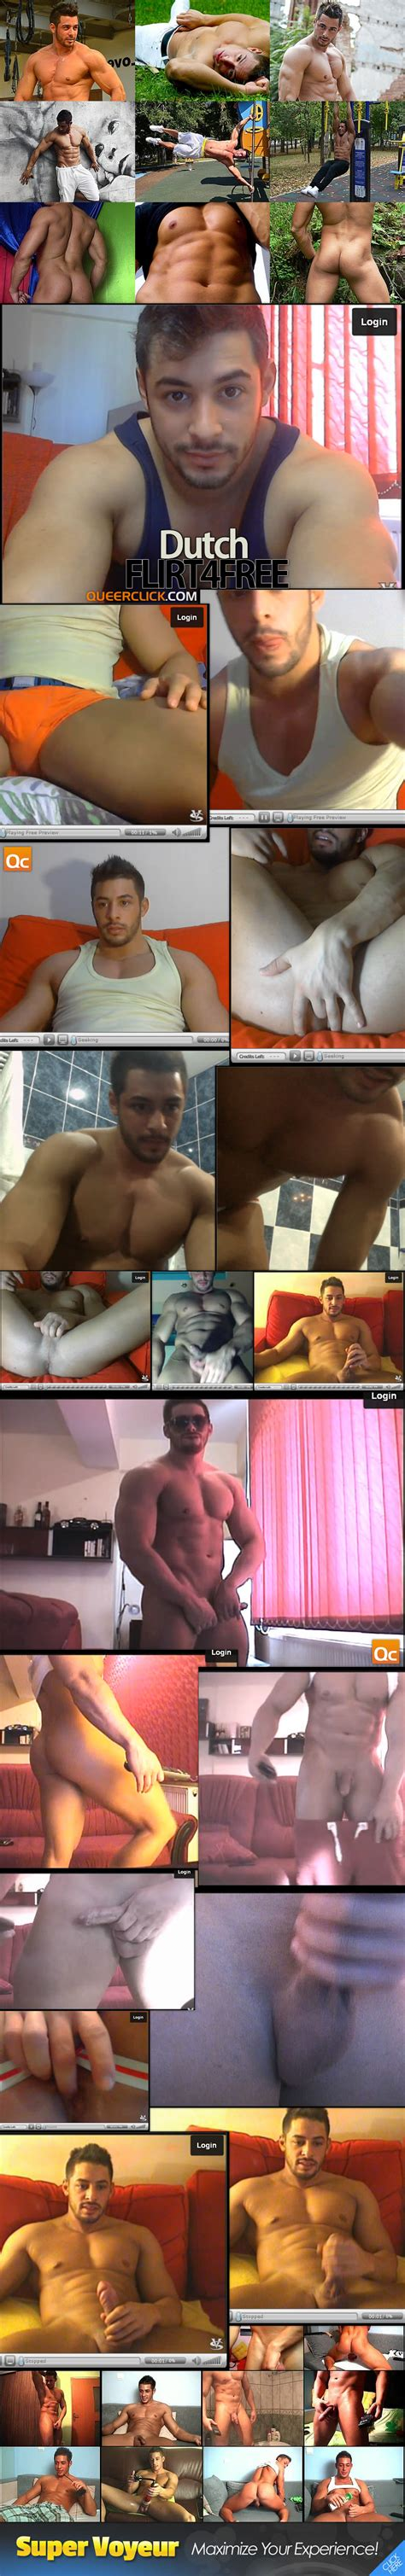 Aiden Kay Justin Lewis Porn justin lewis hot new male webcam model from flirt 4 free